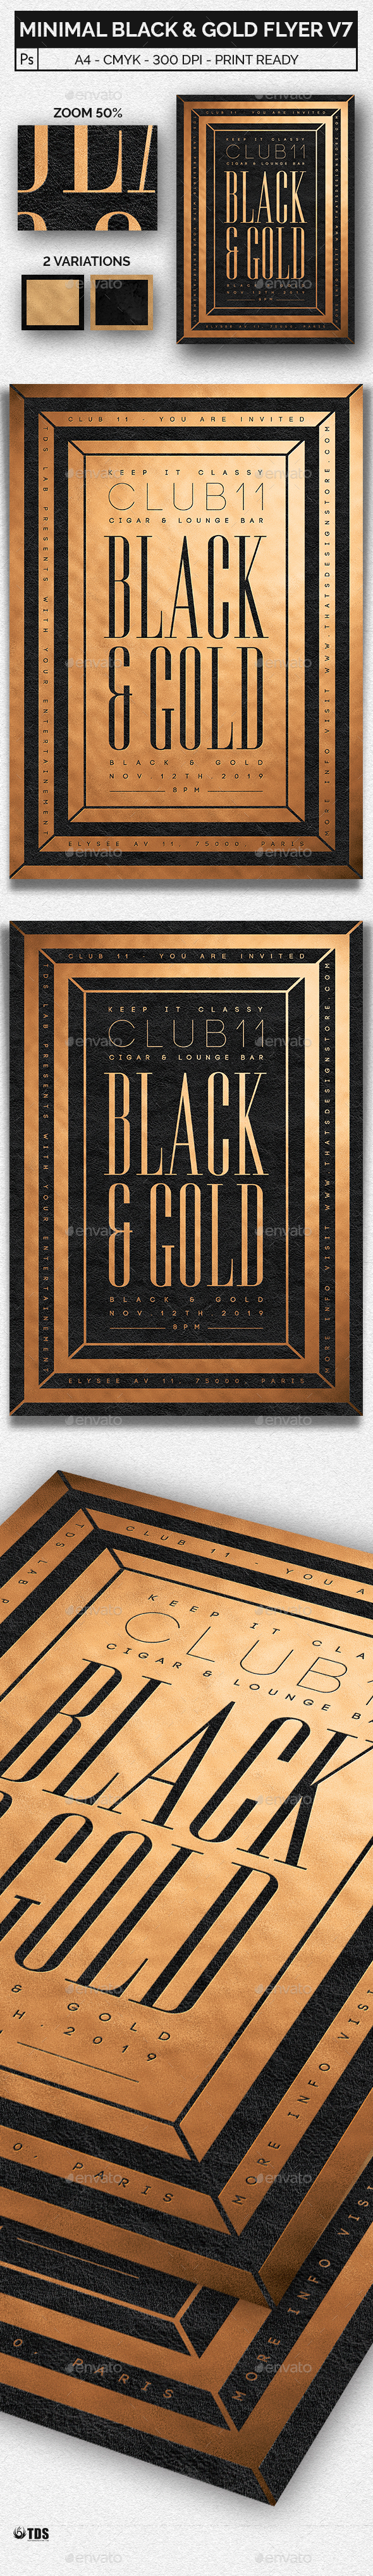 Minimal Black and Gold Flyer Template V7